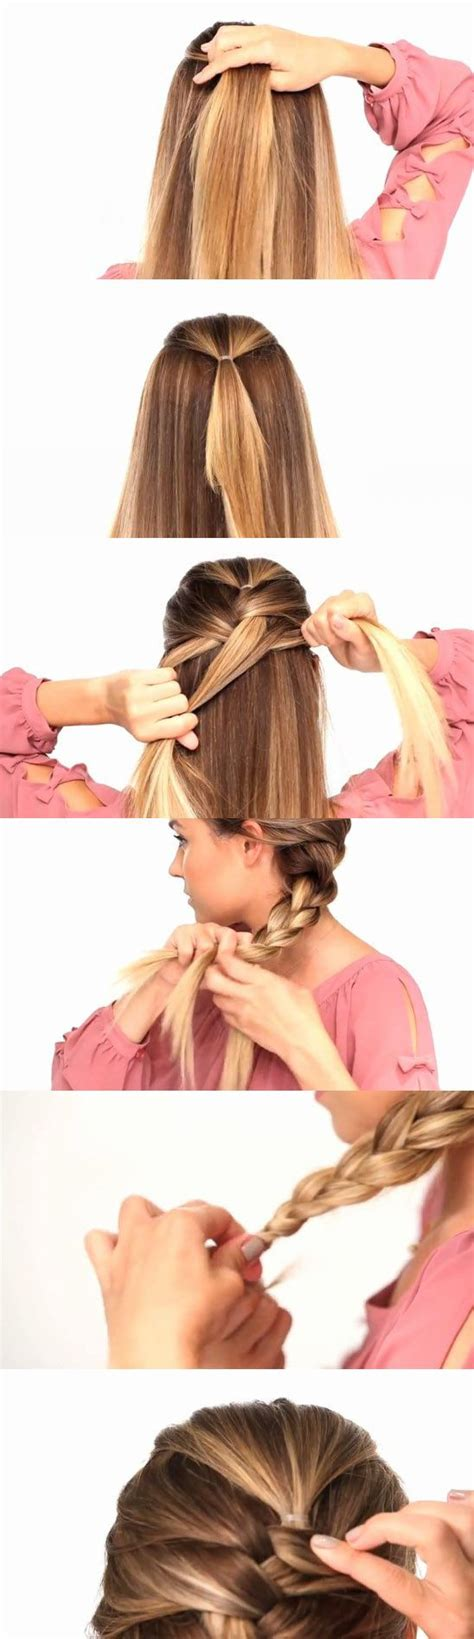 braids hairstyles how to do easy way to french braid your own hair hairstyles